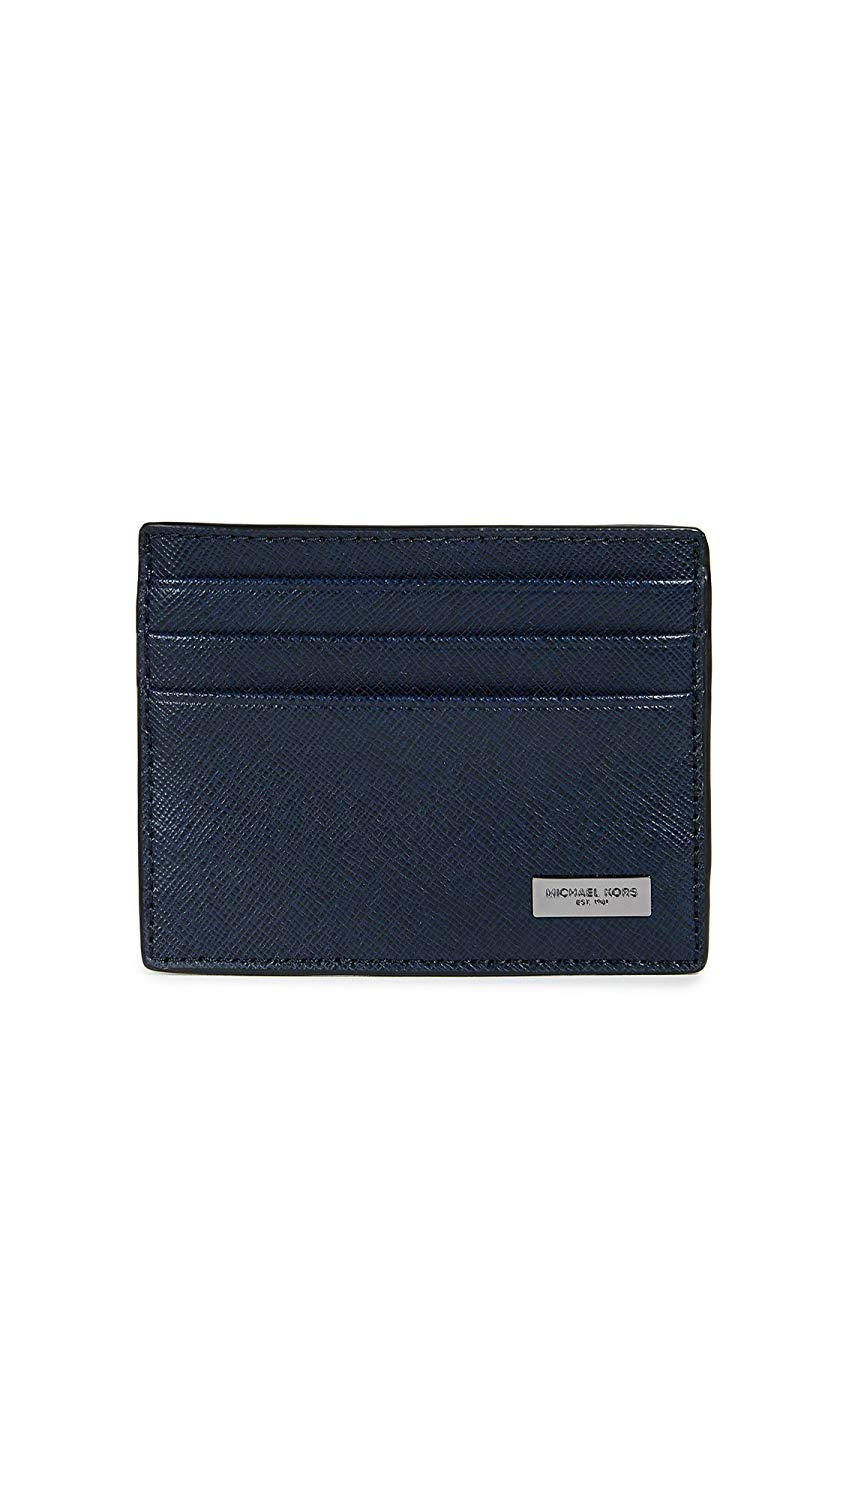 New-Michael-Kors-Men-039-s-Wallet-Navy-Blue-Saffiano-RFID-Leather-Card-Case-38-532